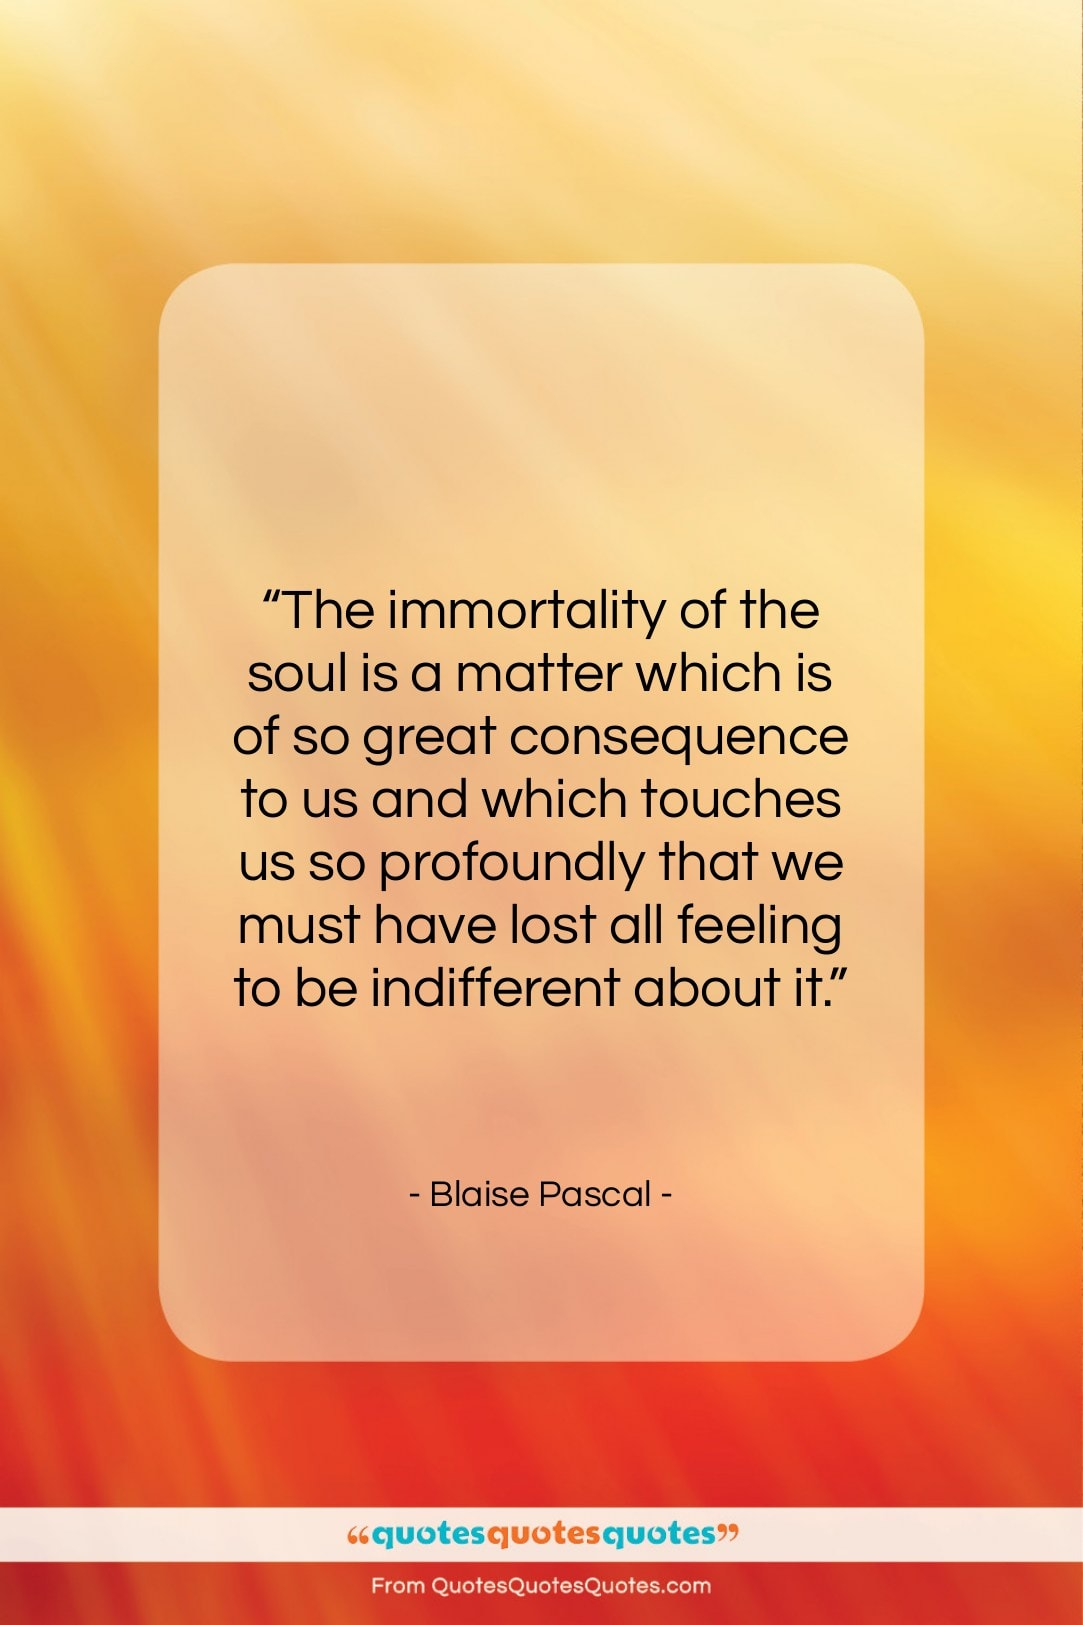 """Blaise Pascal quote: """"The immortality of the soul is a…""""- at QuotesQuotesQuotes.com"""